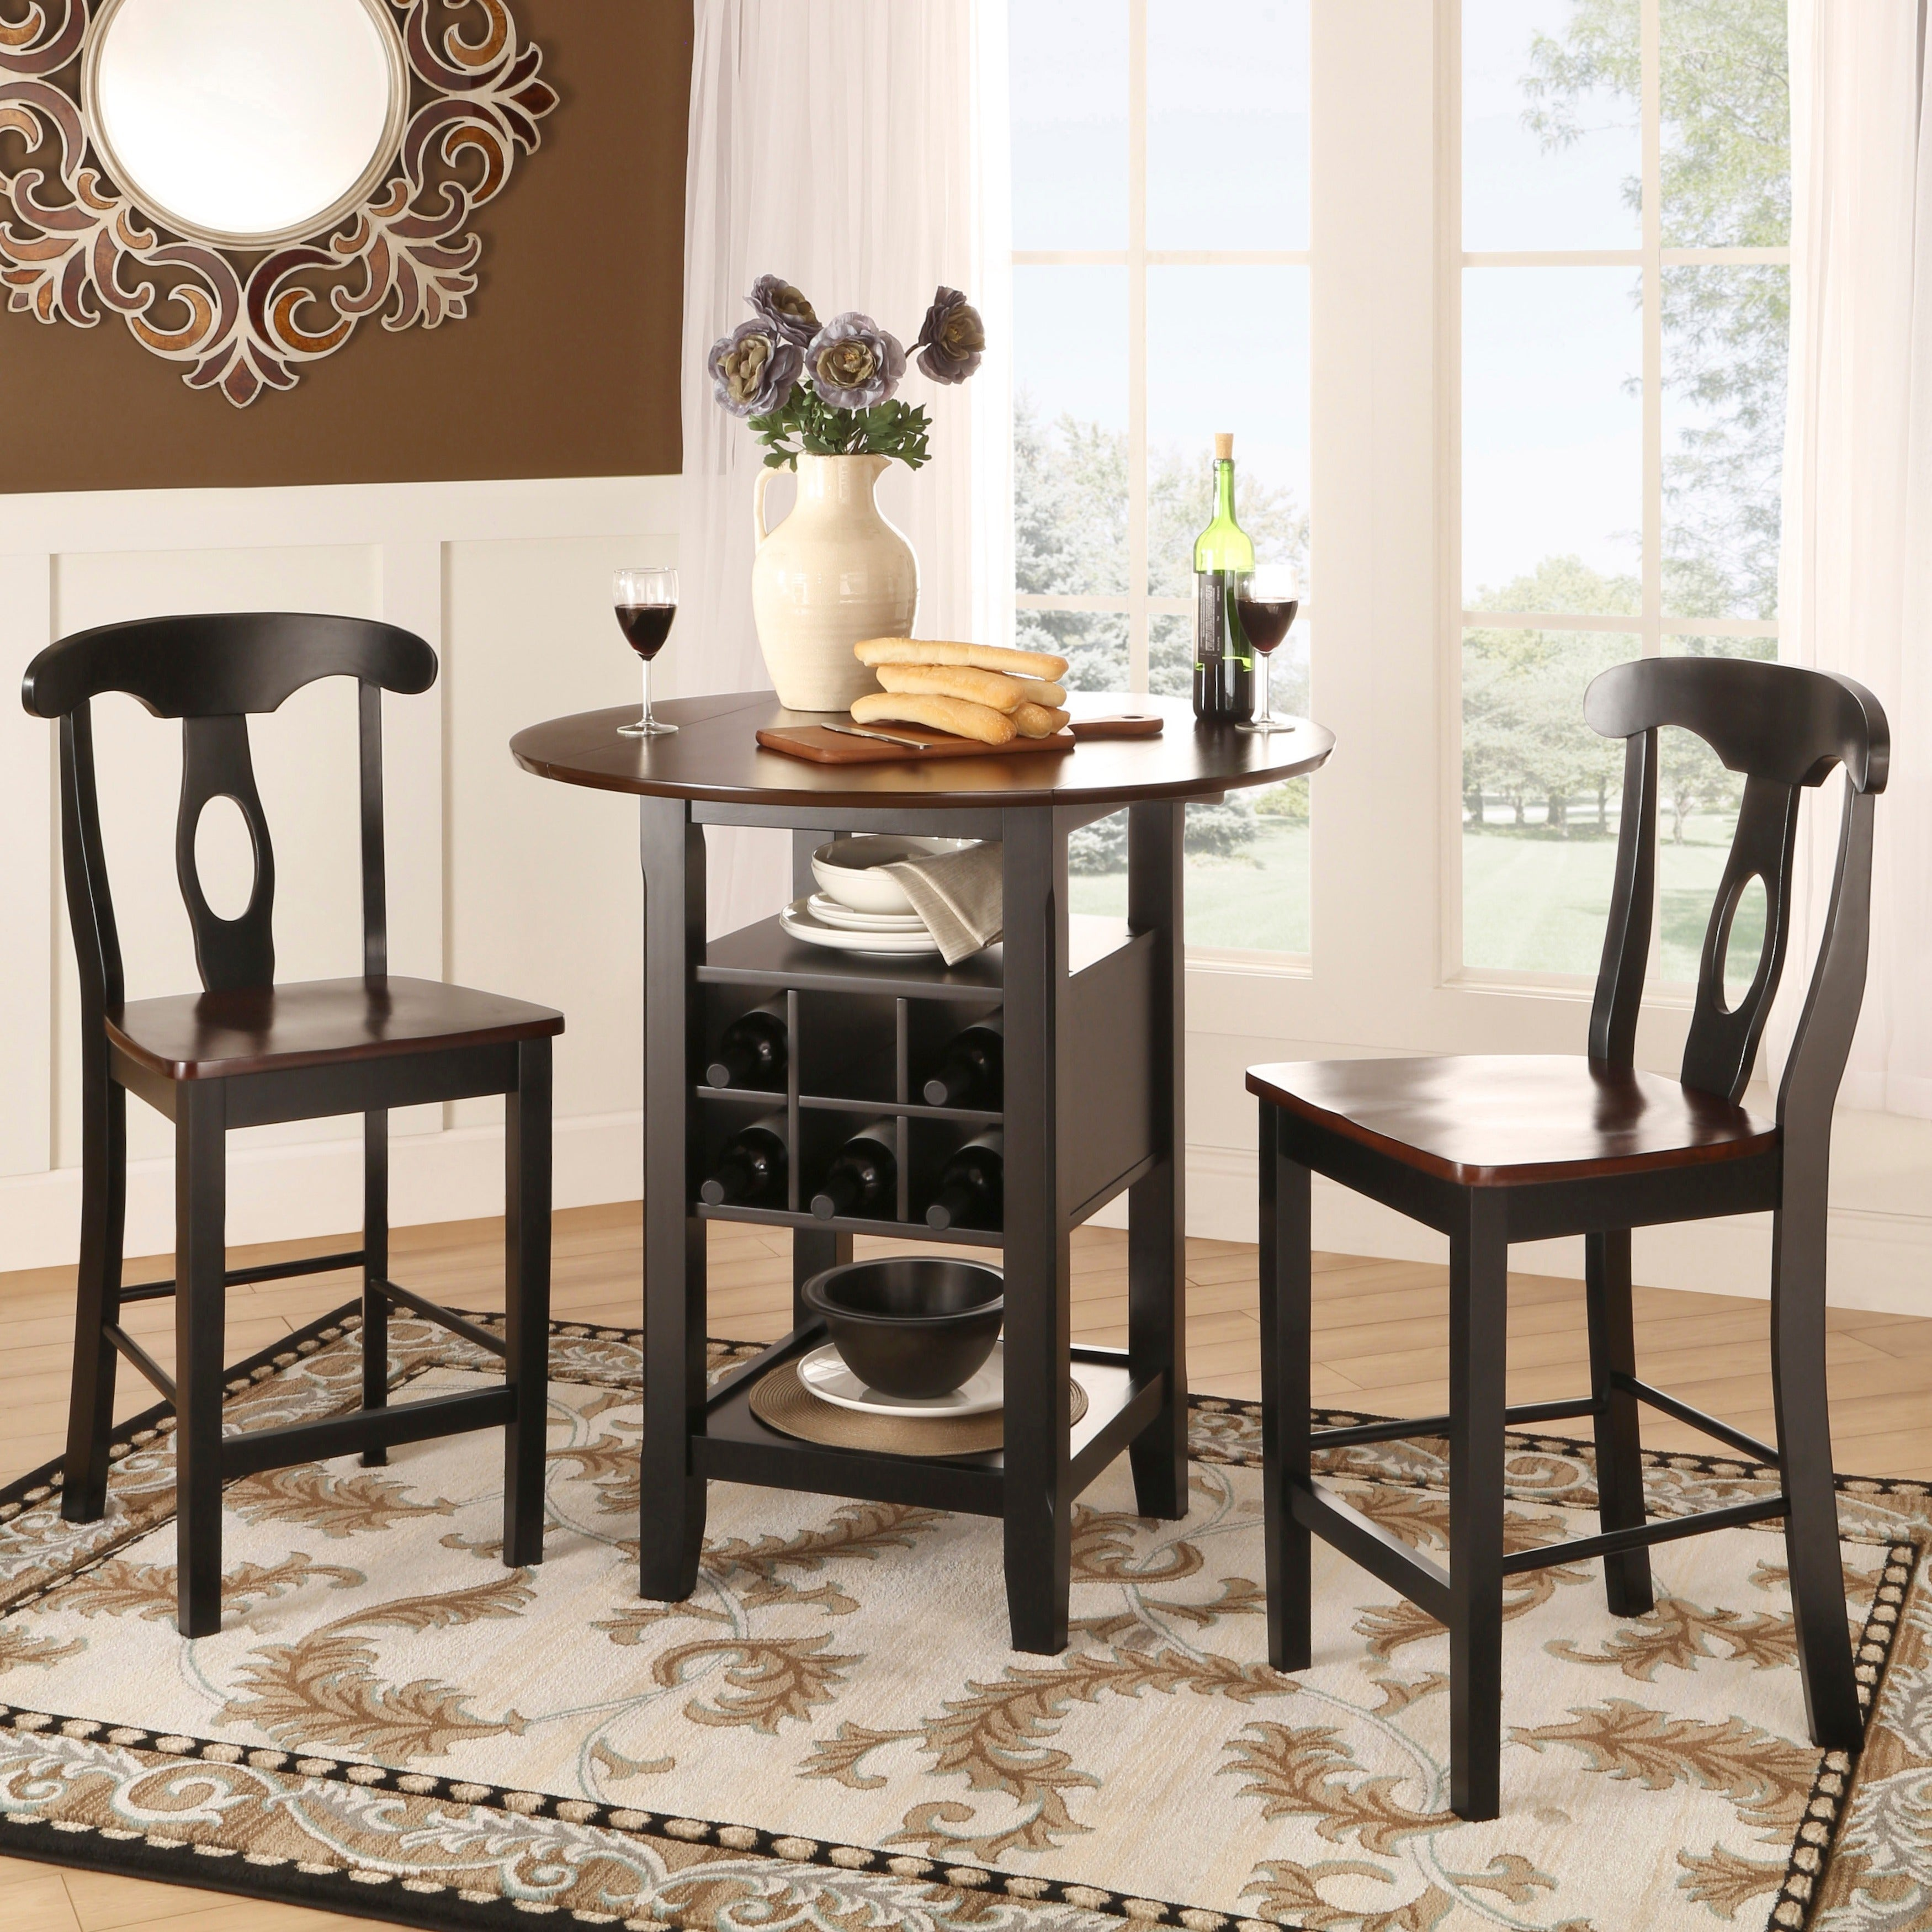 Beautiful Rwanda Two Tone Napoleon 3 Piece Bistro Kitchen Set By INSPIRE Q Classic    Free Shipping Today   Overstock   13684559